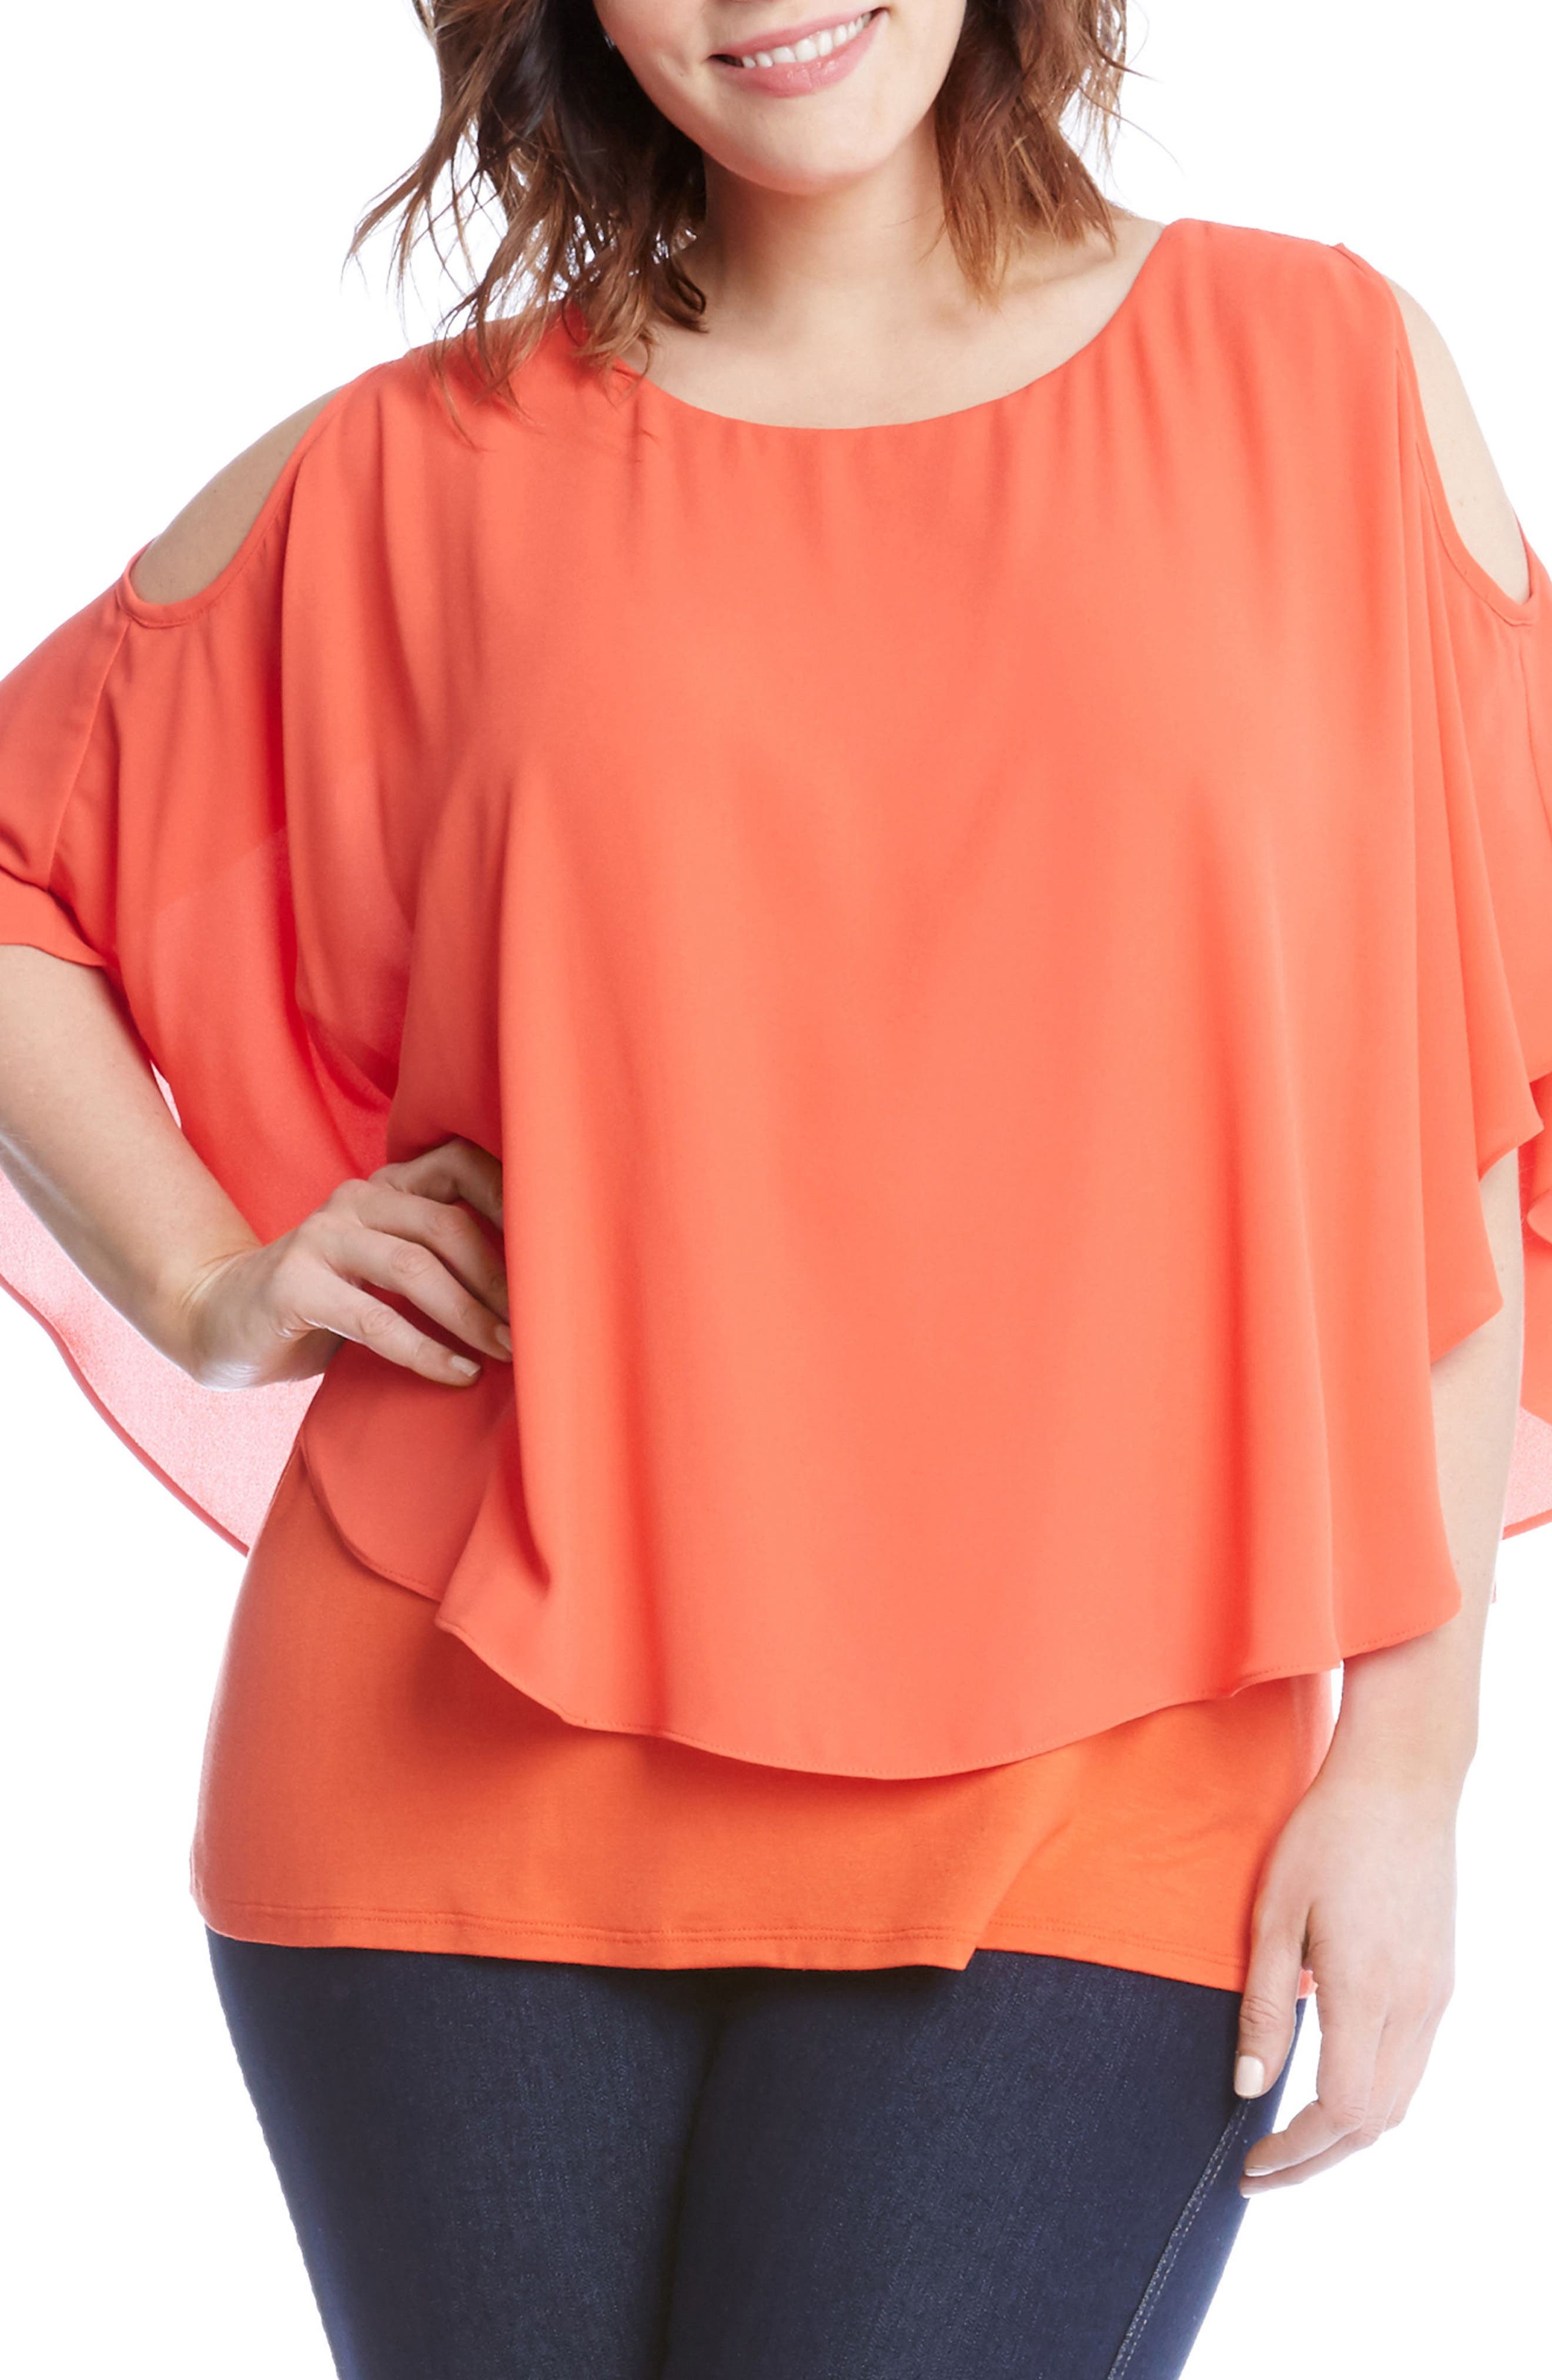 Alternate Image 1 Selected - Karen Kane Layered Cold Shoulder Top (Plus Size)